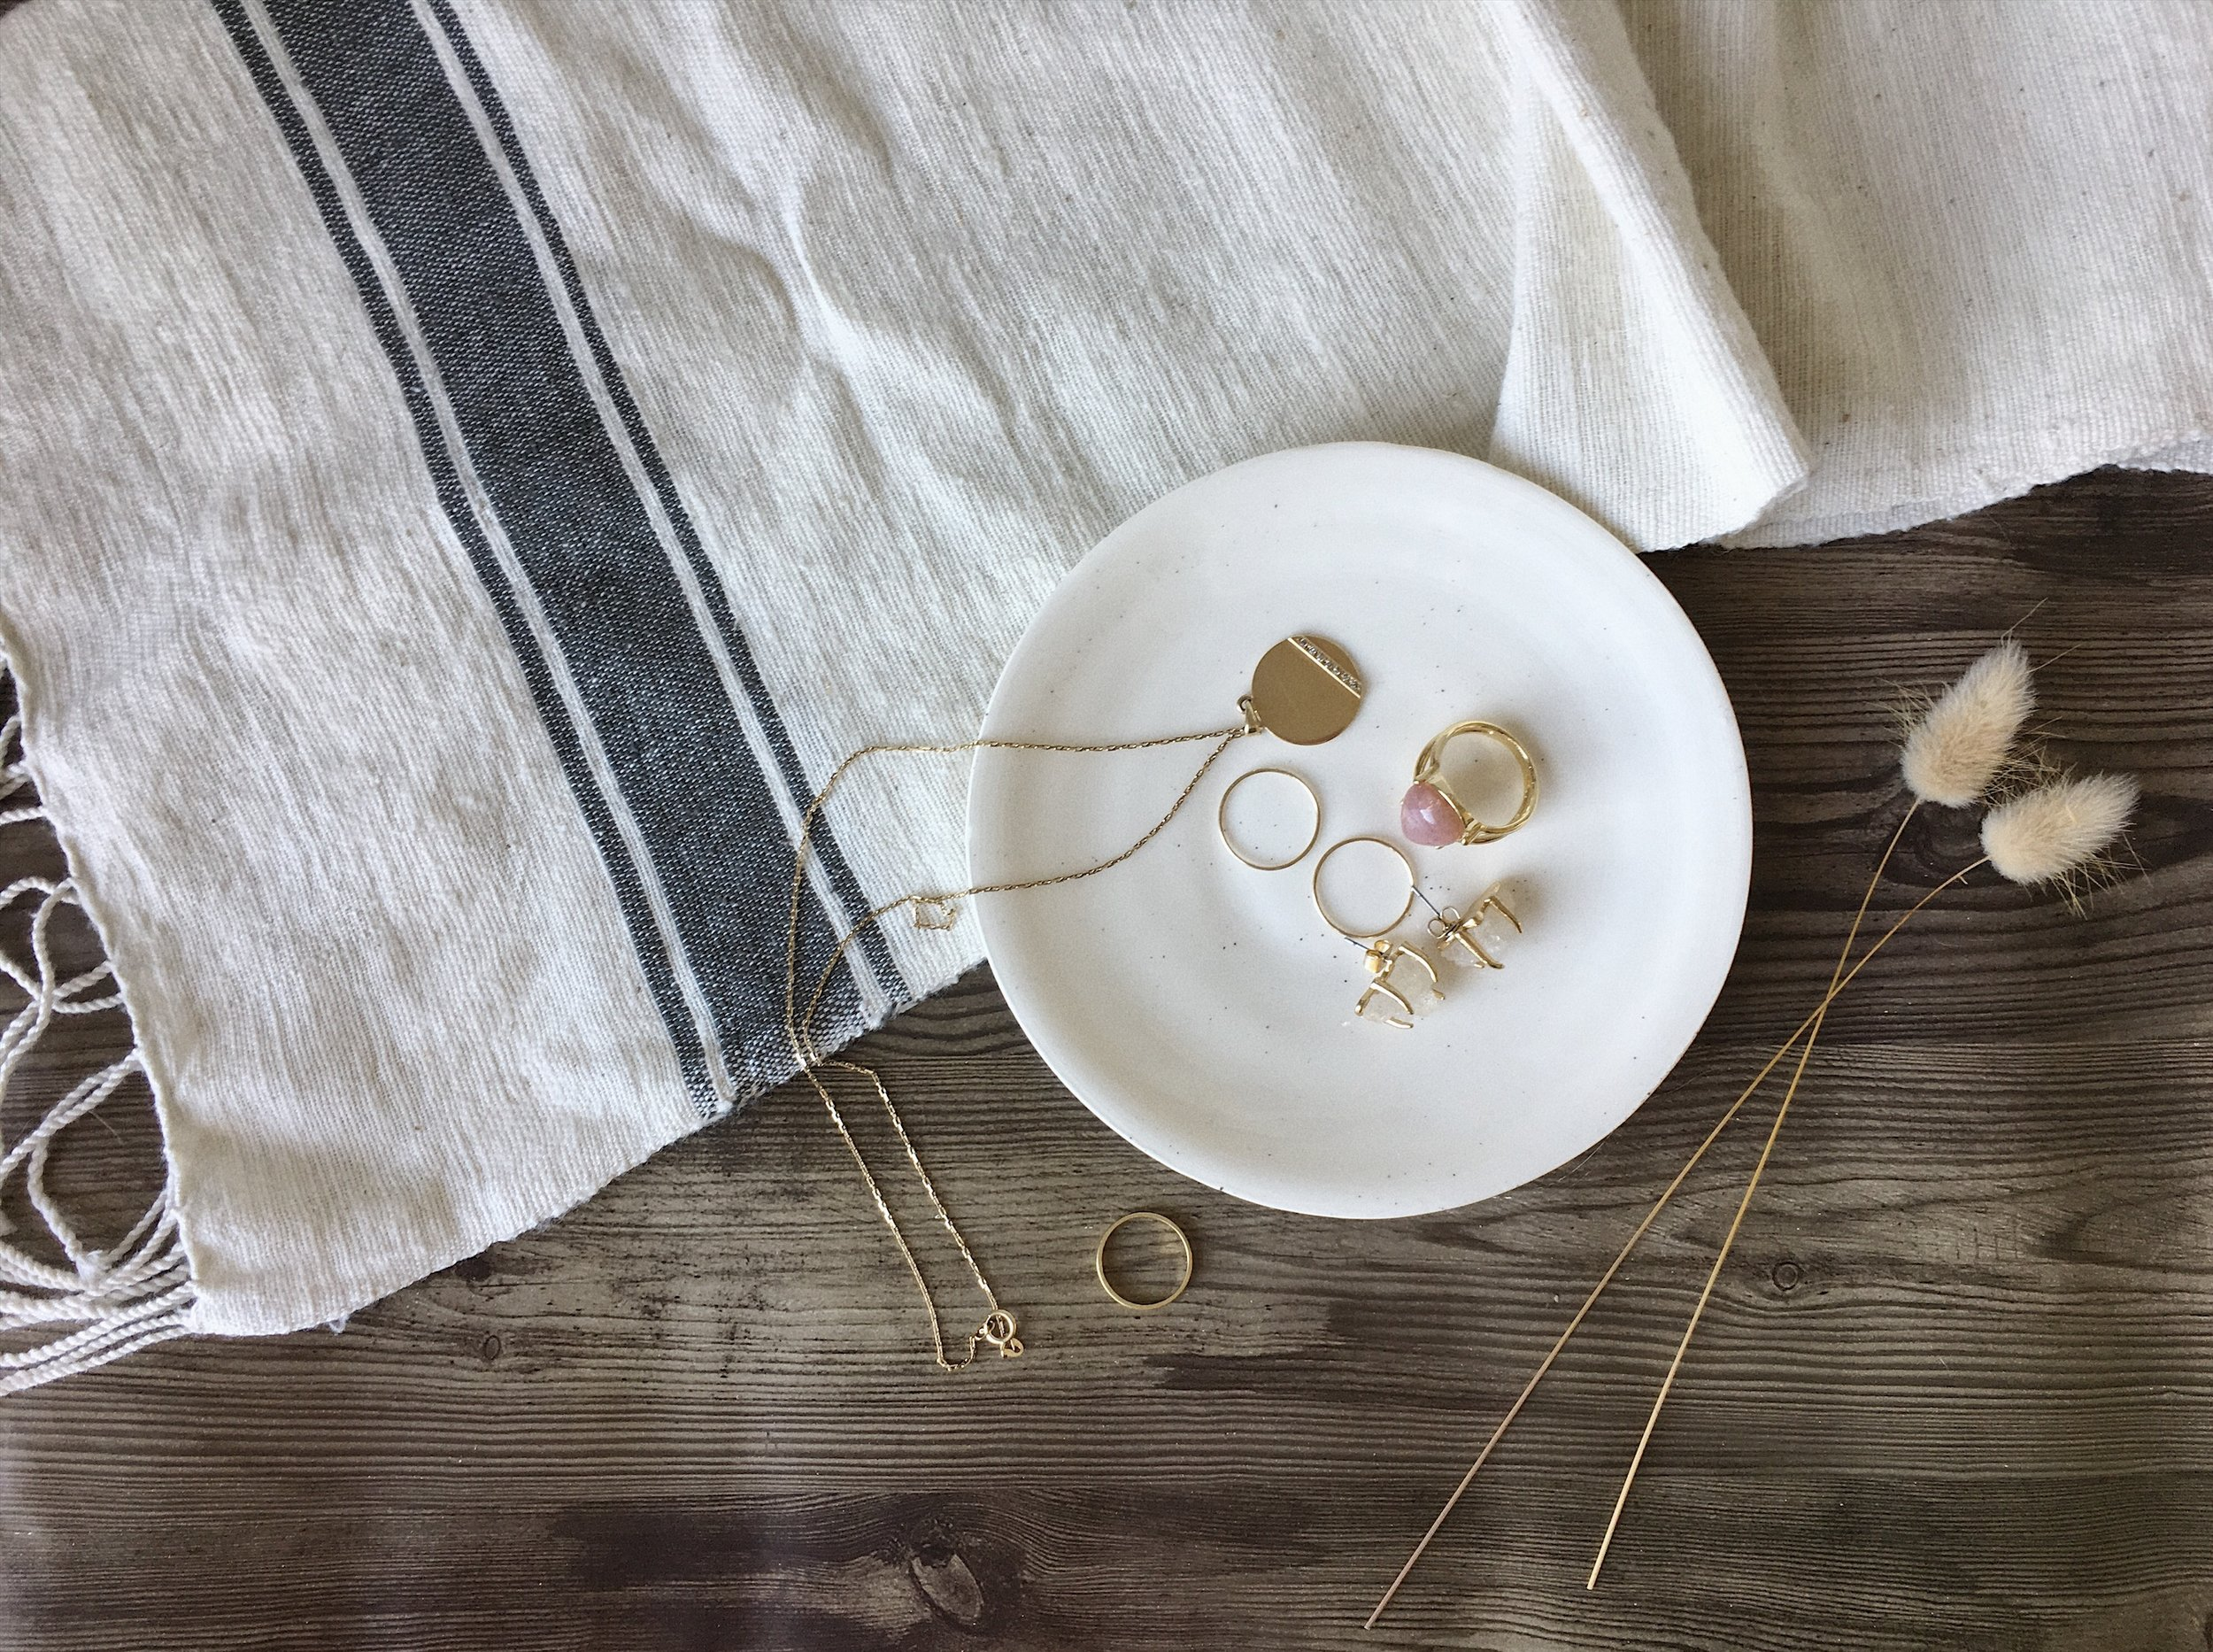 Image by Shout & Co. for Makerie Ceramics. Shout & Co.: Product Stylist & Social Media Strategist.